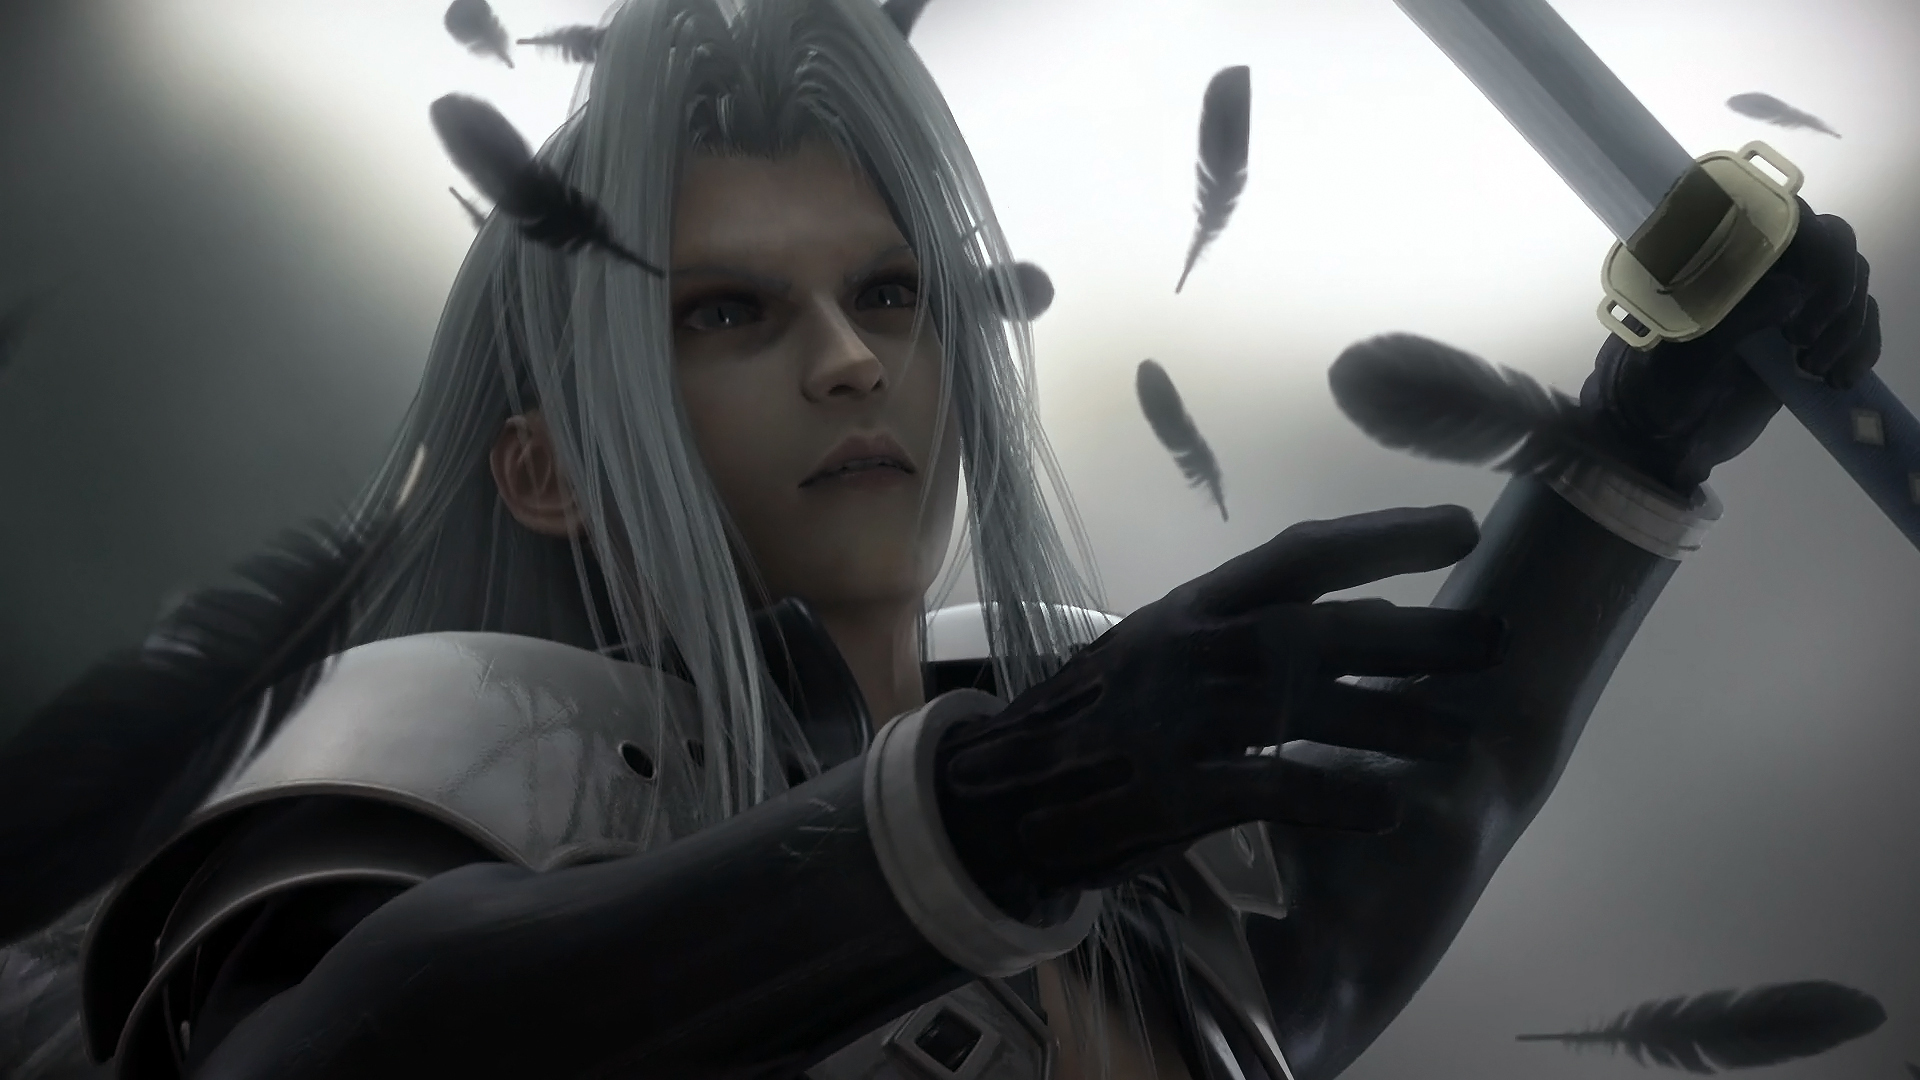 Sephiroth images Sephiroth HD wallpaper and background photos ...